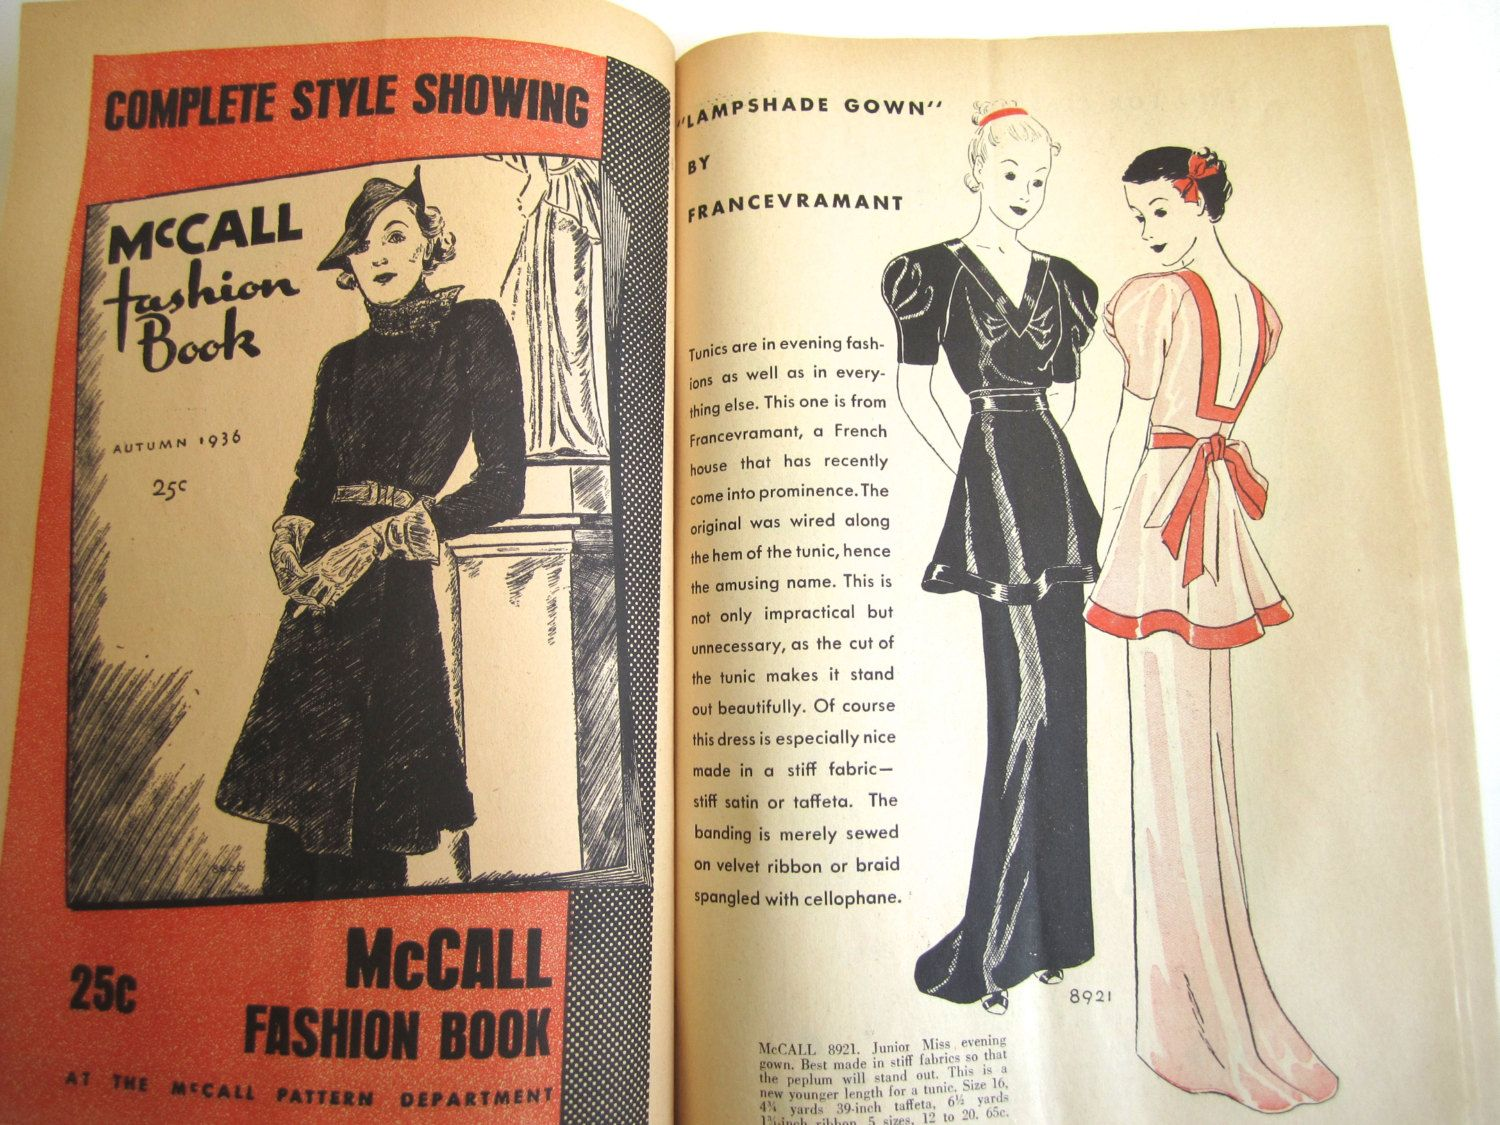 McCall Style News, September 1936 featuring McCall 8921 by Francevramant